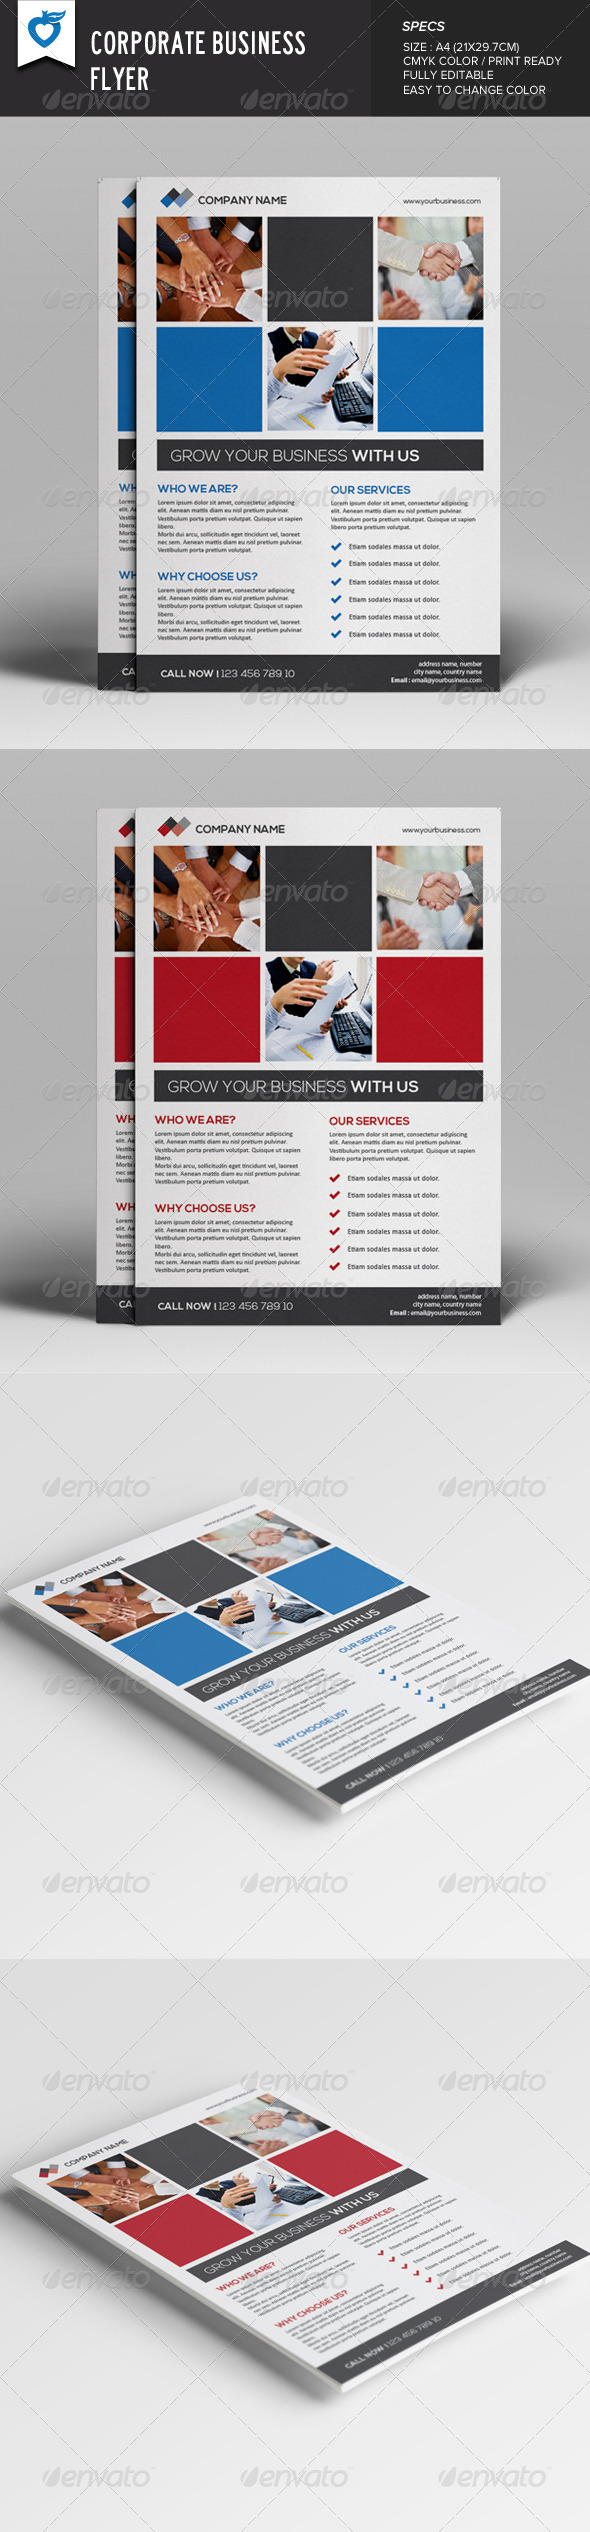 GraphicRiver Corporate Business Flyer v9 7998465